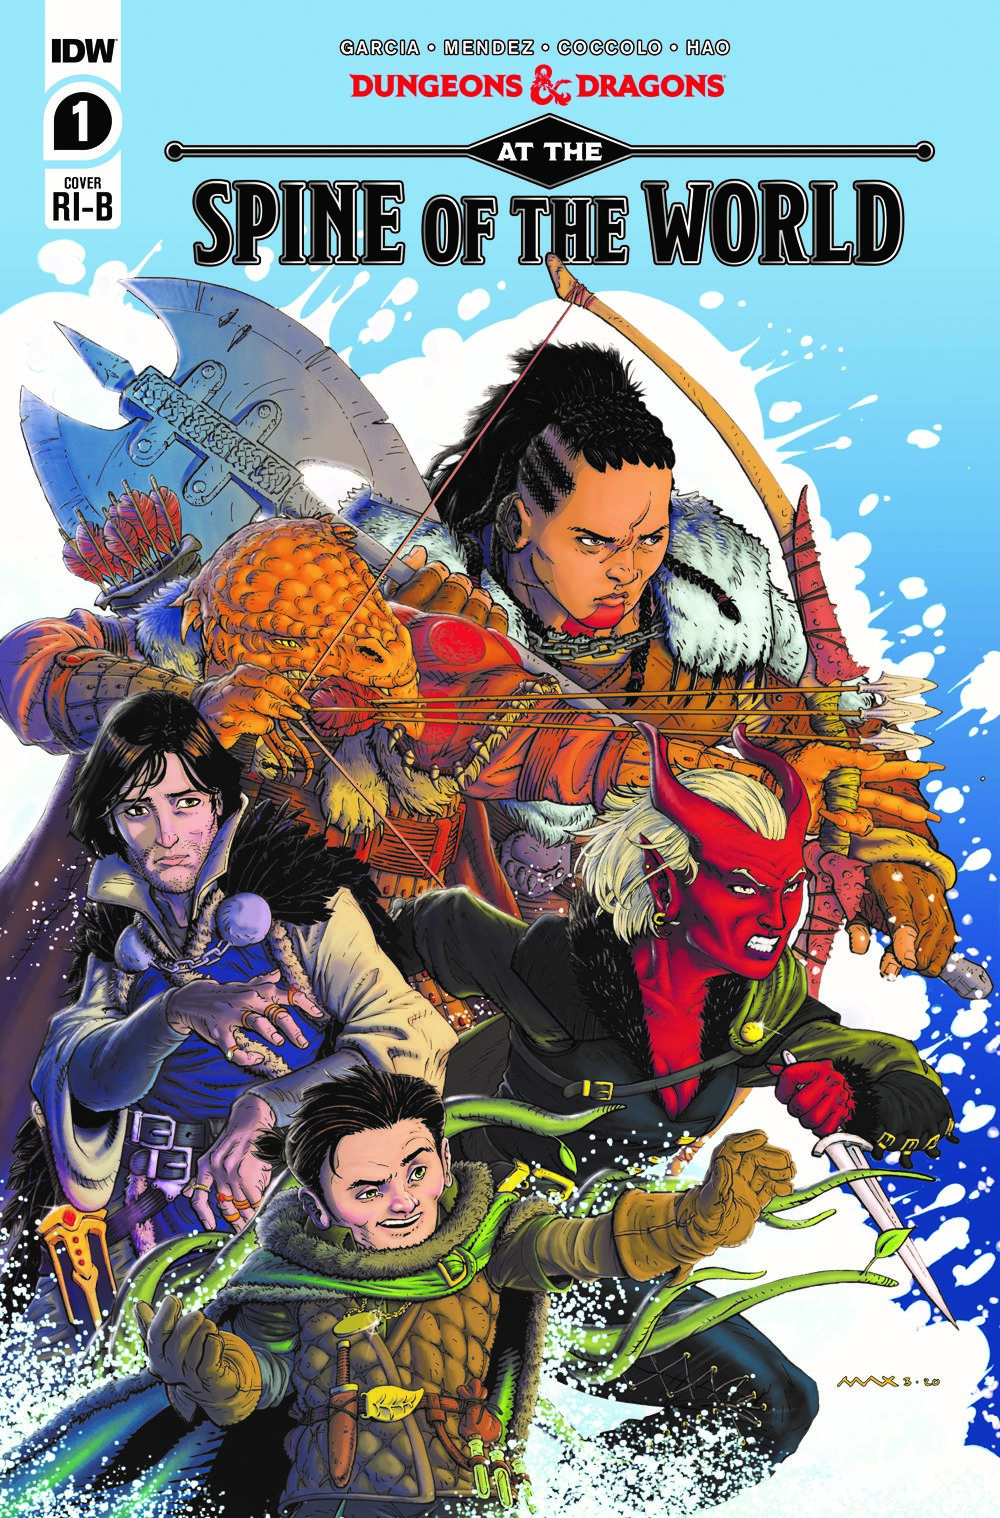 DD_ATSOTW01-coverRIB ComicList Previews: DUNGEONS AND DRAGONS AT THE SPINE OF THE WORLD #1 (OF 4)